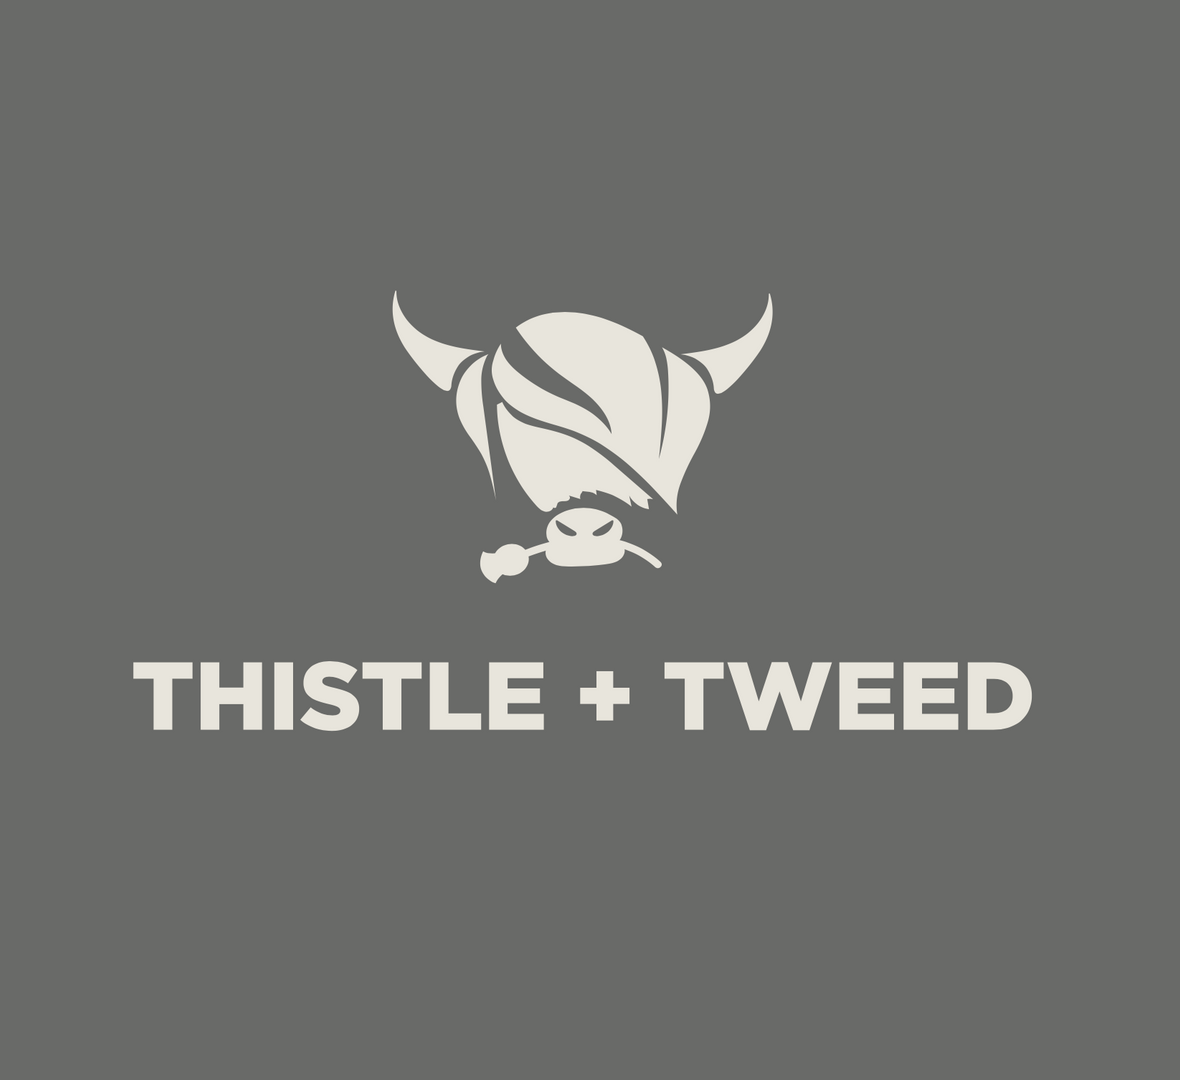 THISTLE + TWEED LOGO